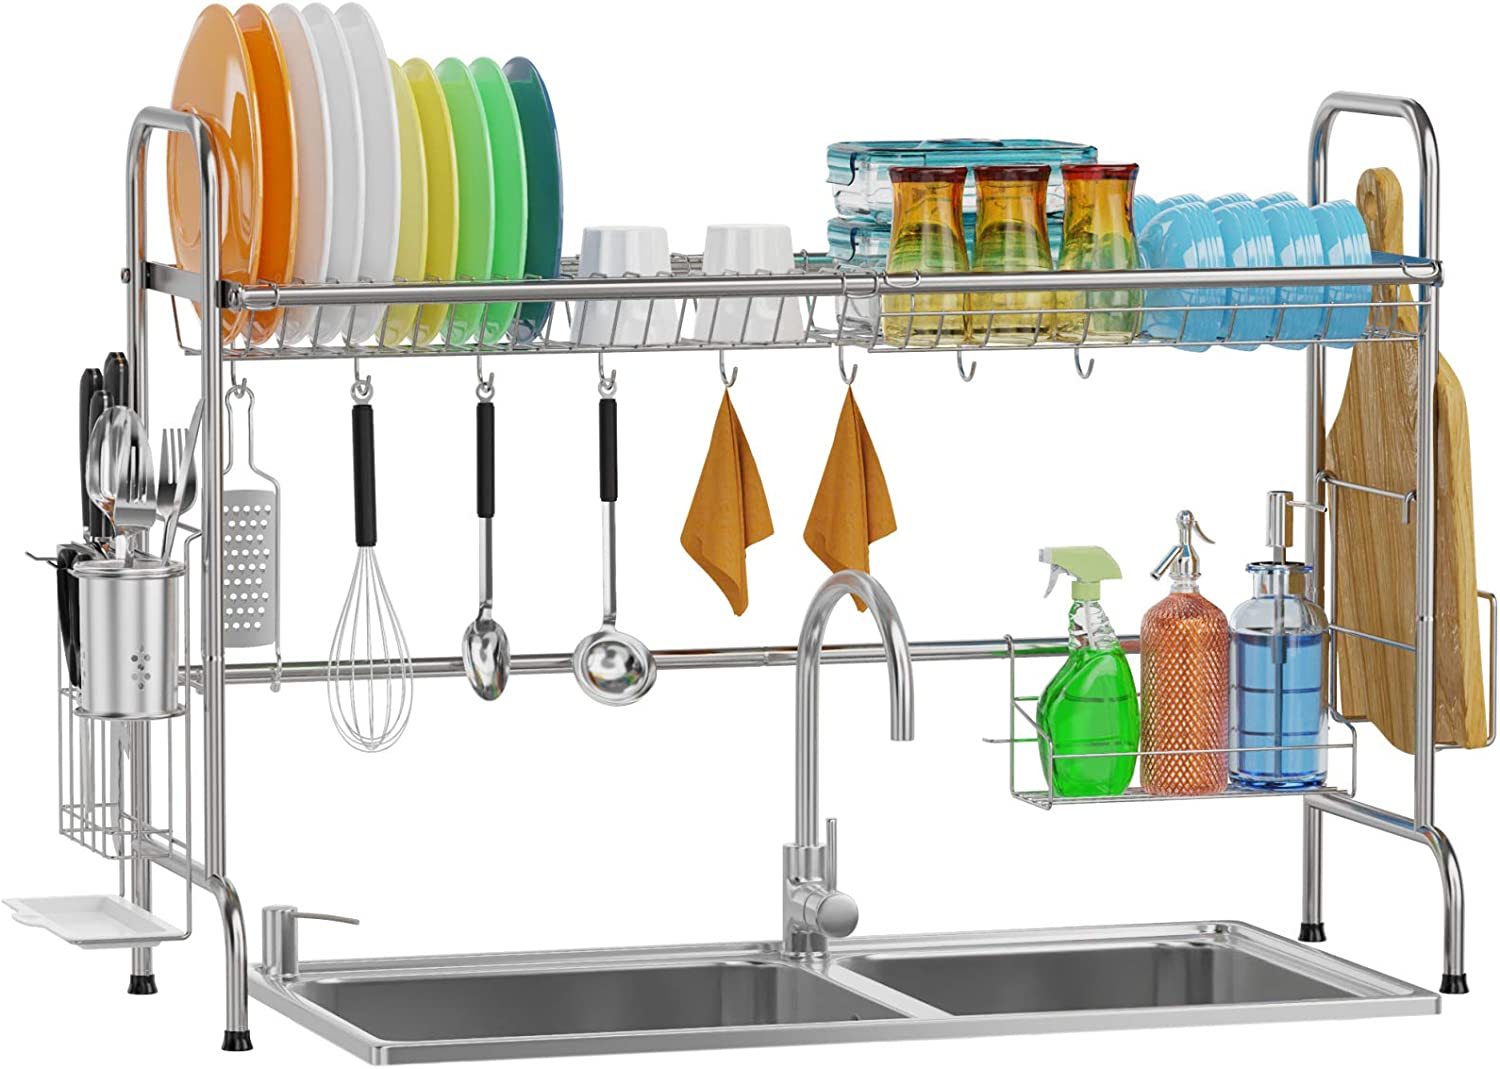 Over Sink Dish Rack, GSlife Kitchen Over Sink Shelf Stainless Steel Over the Sink Drying Rack, Silver